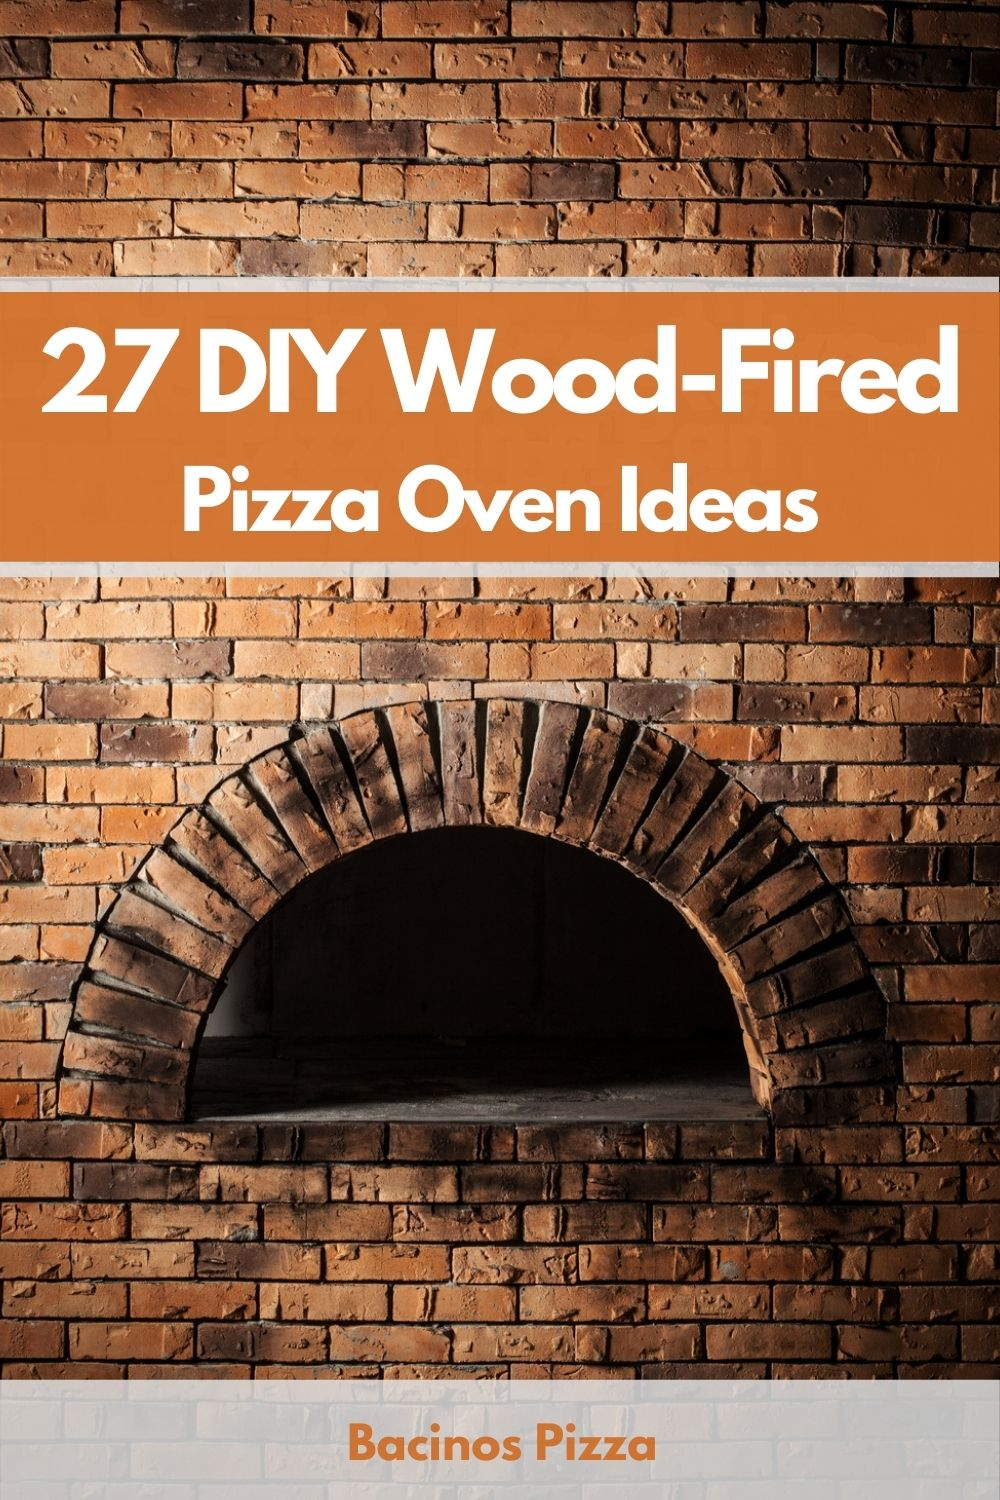 27 DIY Wood-Fired Pizza Oven Ideas pin